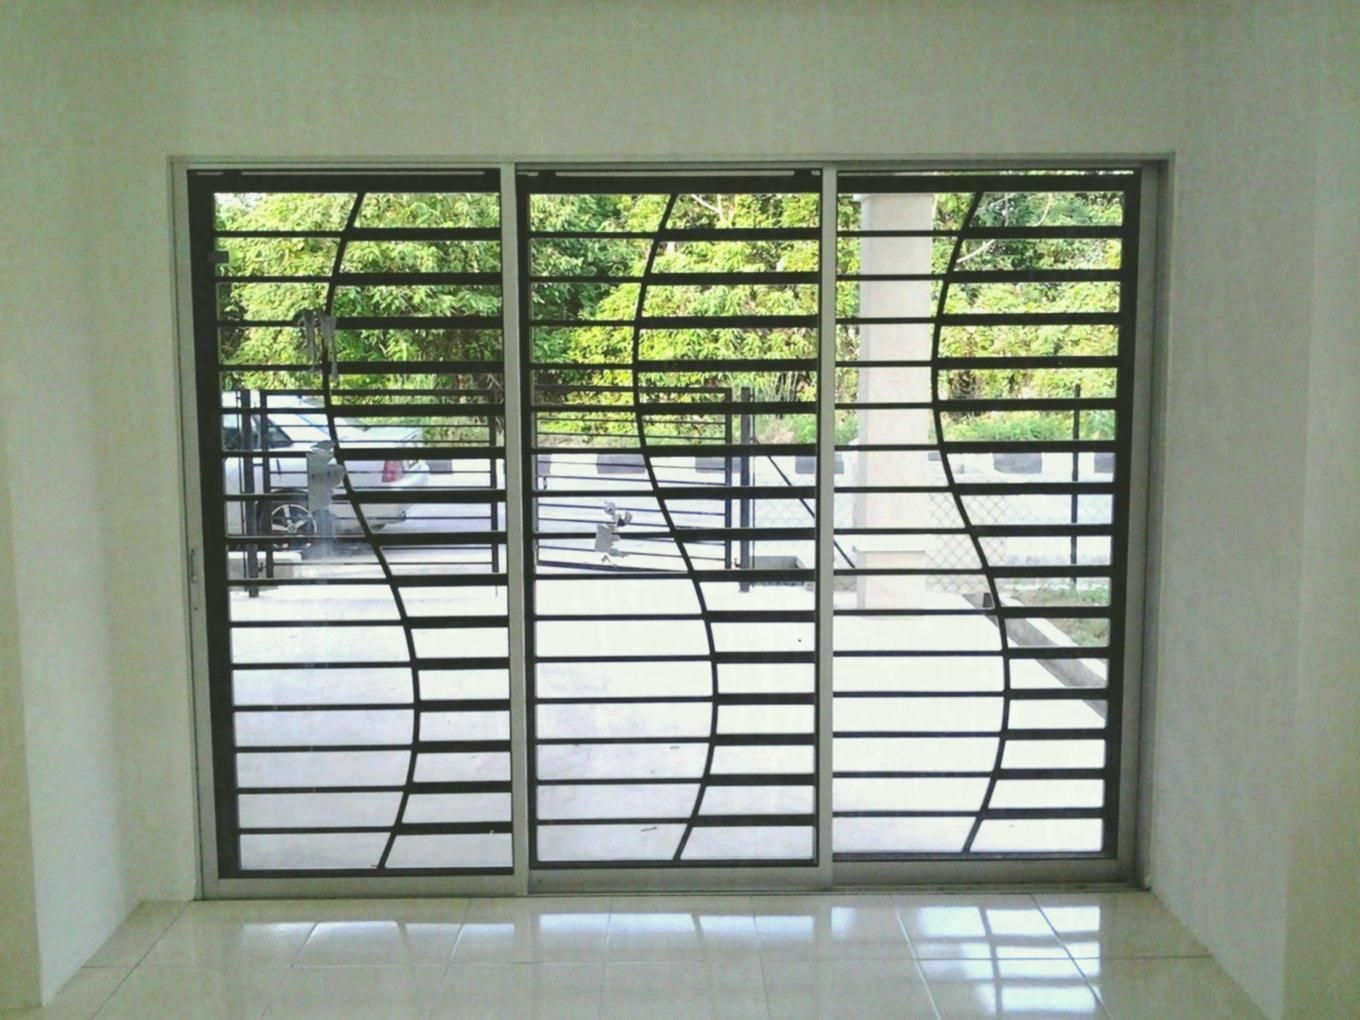 Fancy Grille Design Malaysia Modern House With Stainless ... on sliding window designs for homes, wood window designs for homes, outdoor window designs for homes, exterior window designs for homes, french window designs for homes, window grill designs kenya, bay window designs for homes, bathroom window designs for homes, window grills catalog, security doors for homes, back doors for homes, decorative windows for homes, spanish window designs for homes,